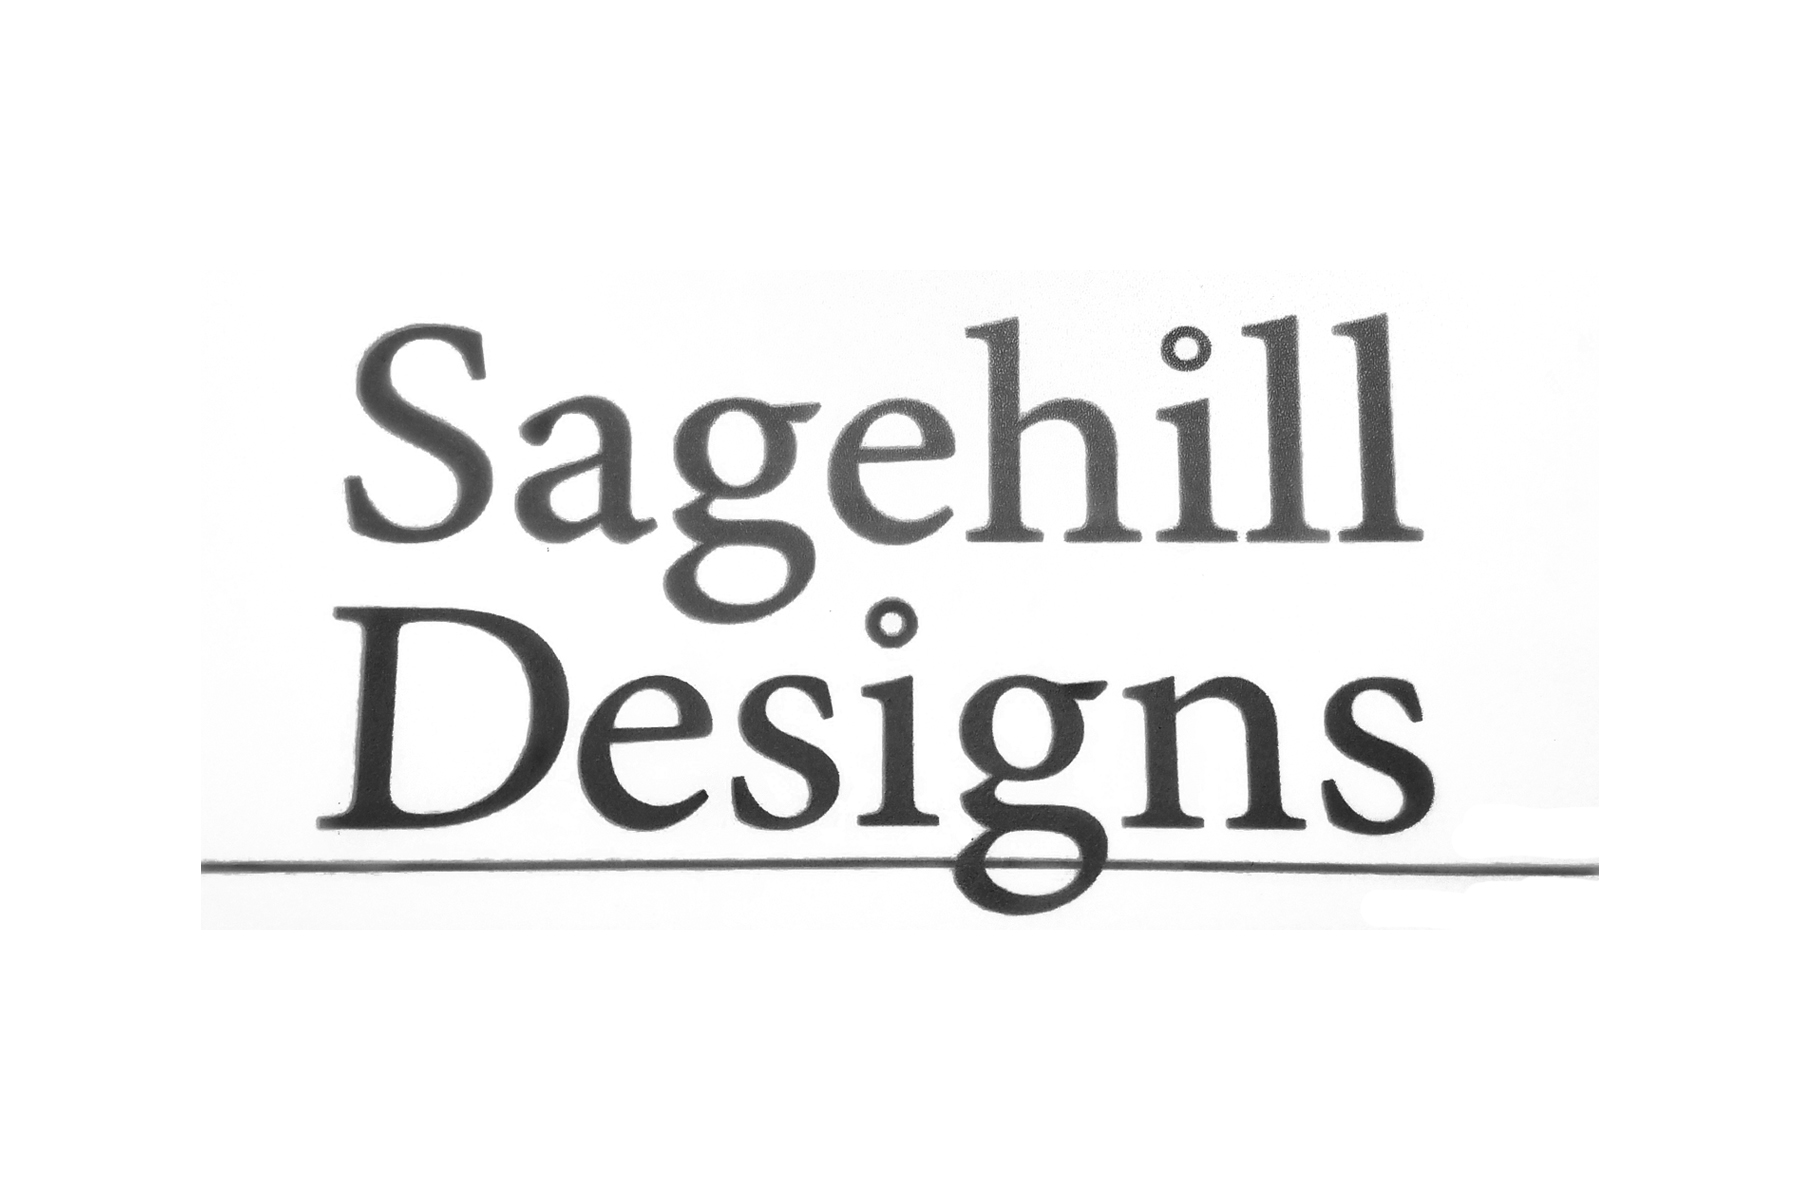 Sagehill Designs GS.jpg